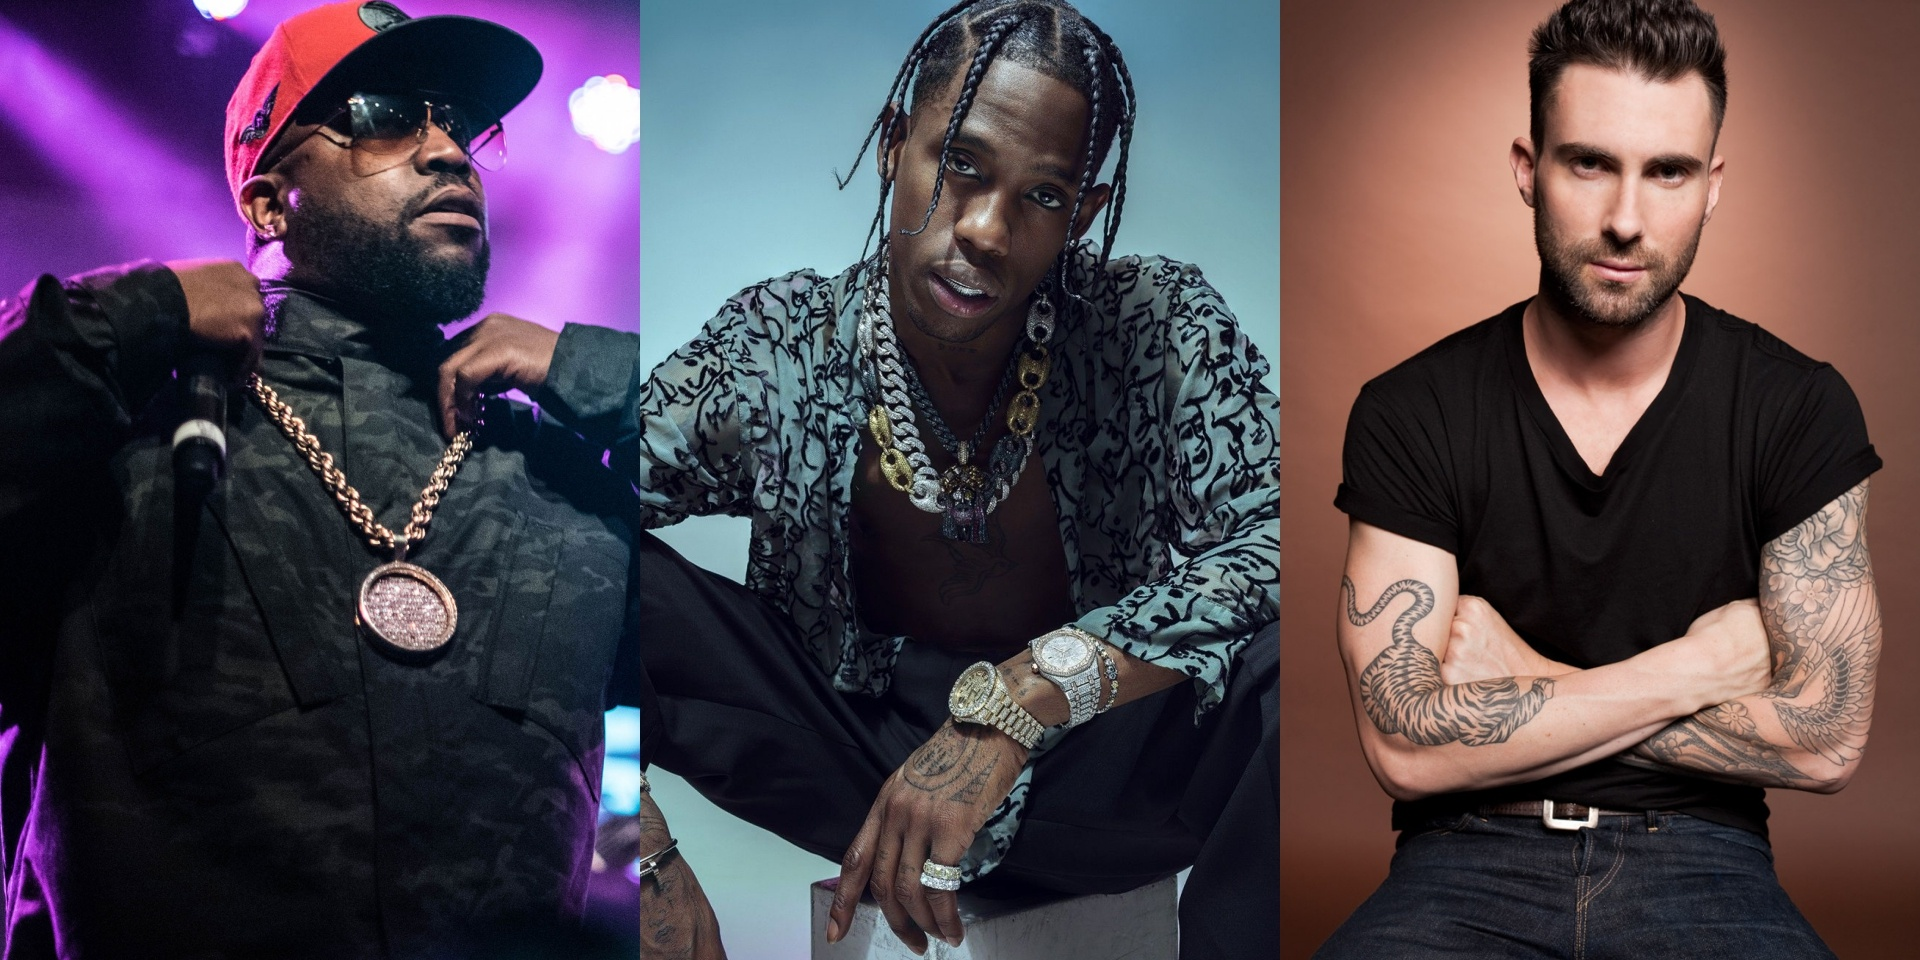 Maroon 5, Travis Scott and Big Boi perform at the 2019 Super Bowl Halftime Show – watch